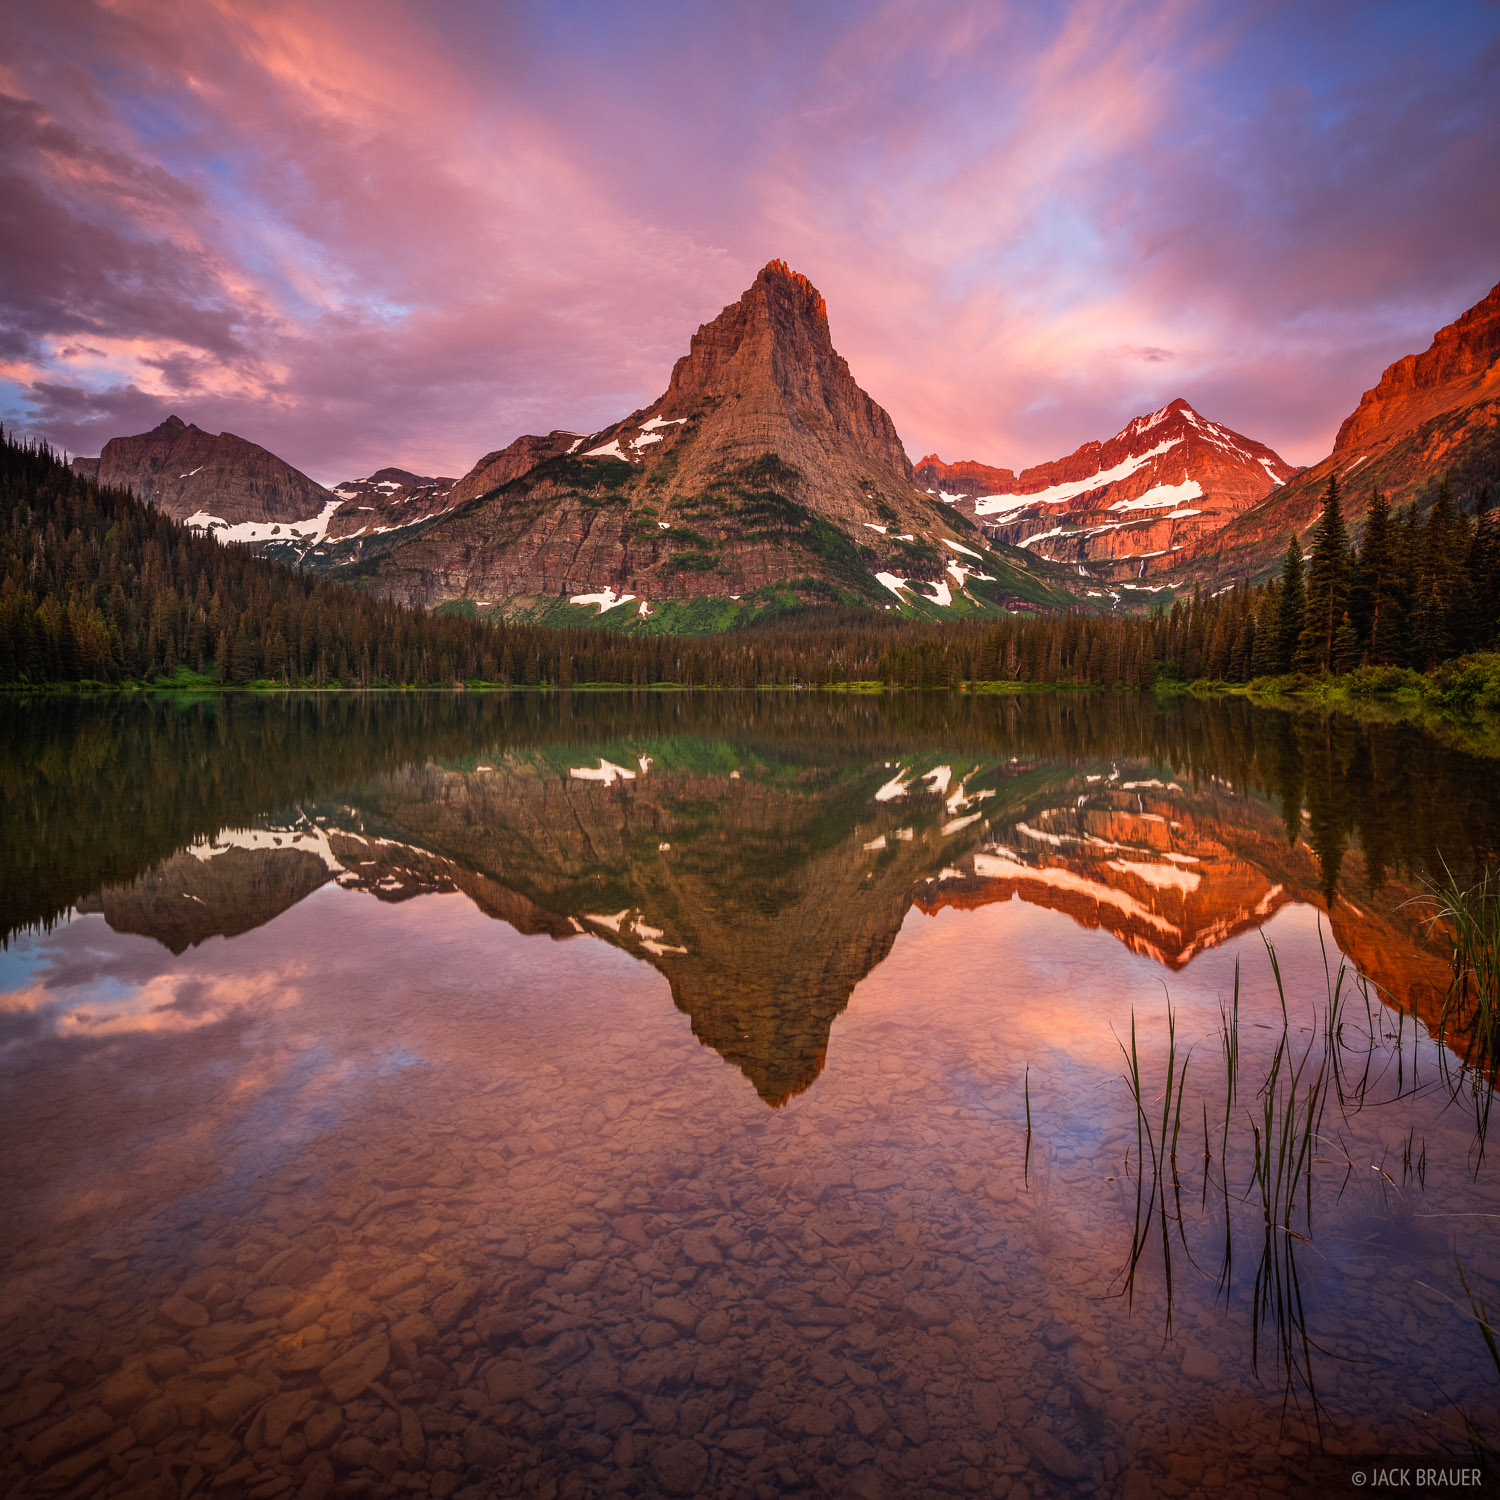 Pyramid Peak, Glacier National Park, Montana, sunrise, reflection, Glenns Lake, photo